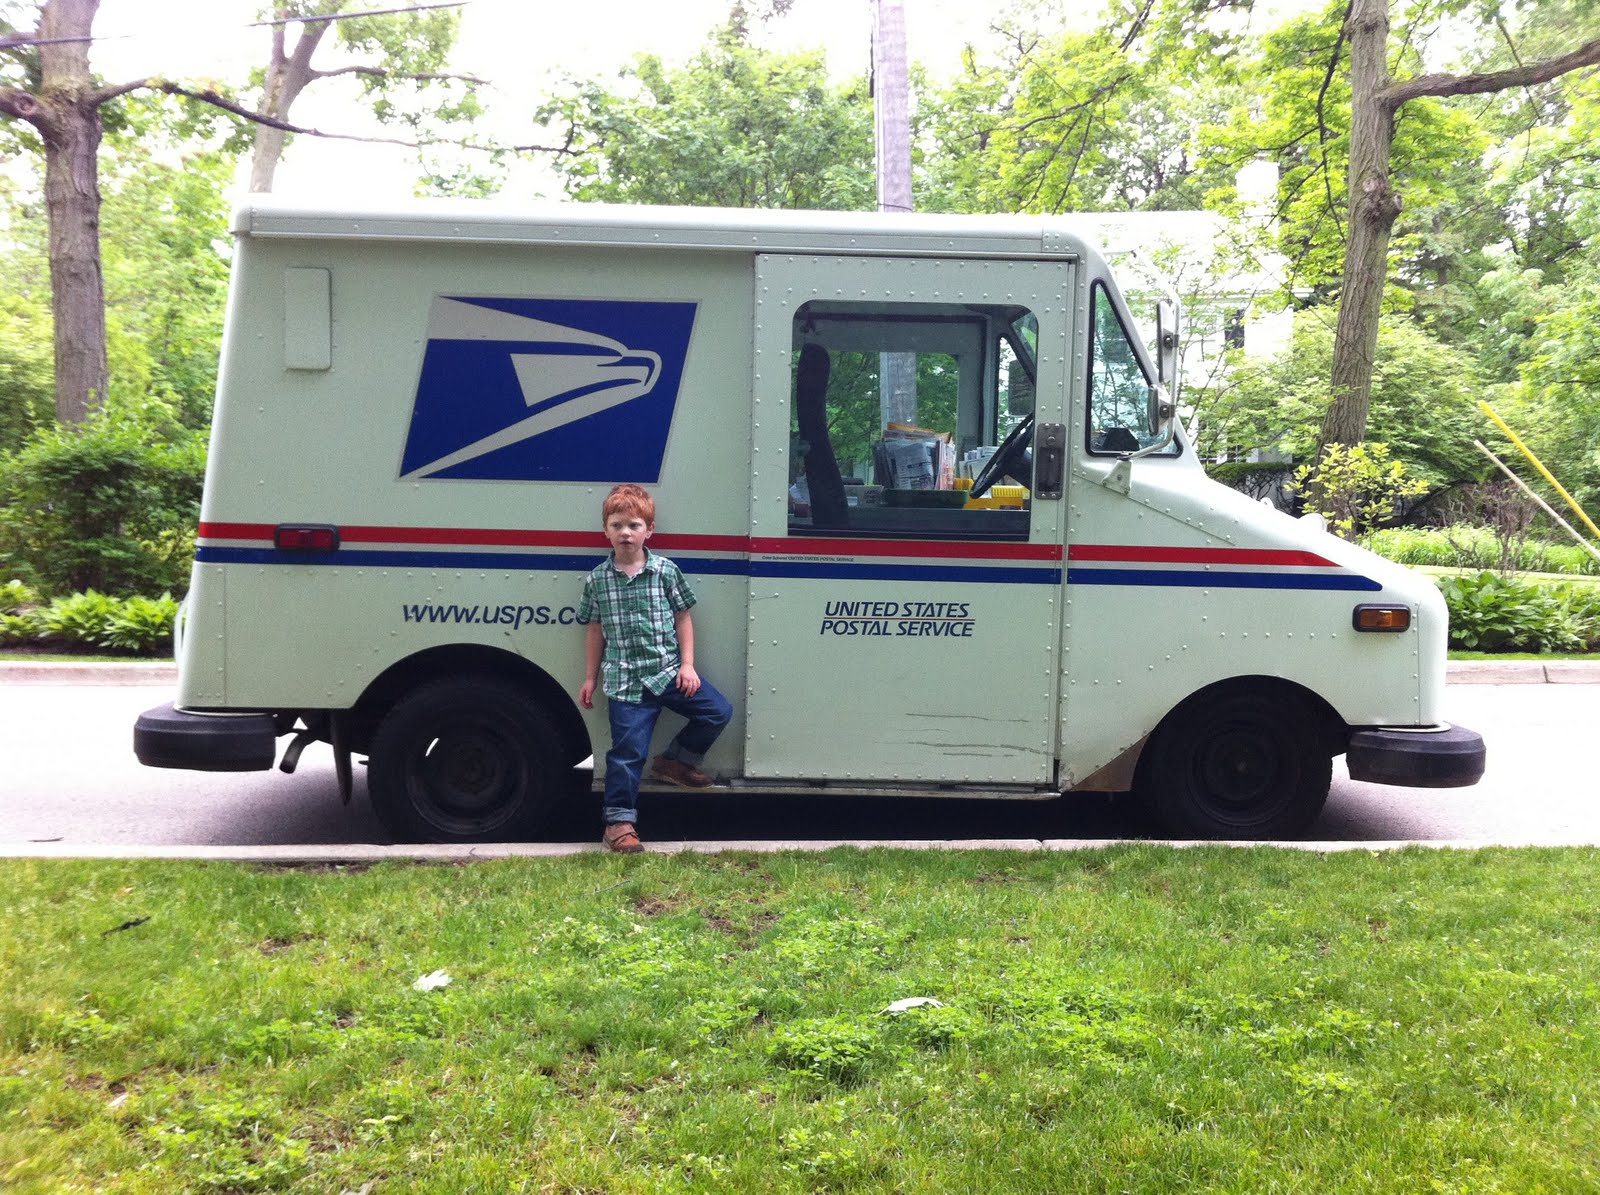 georgeandabedochicago: we saw a really cool postman's truck